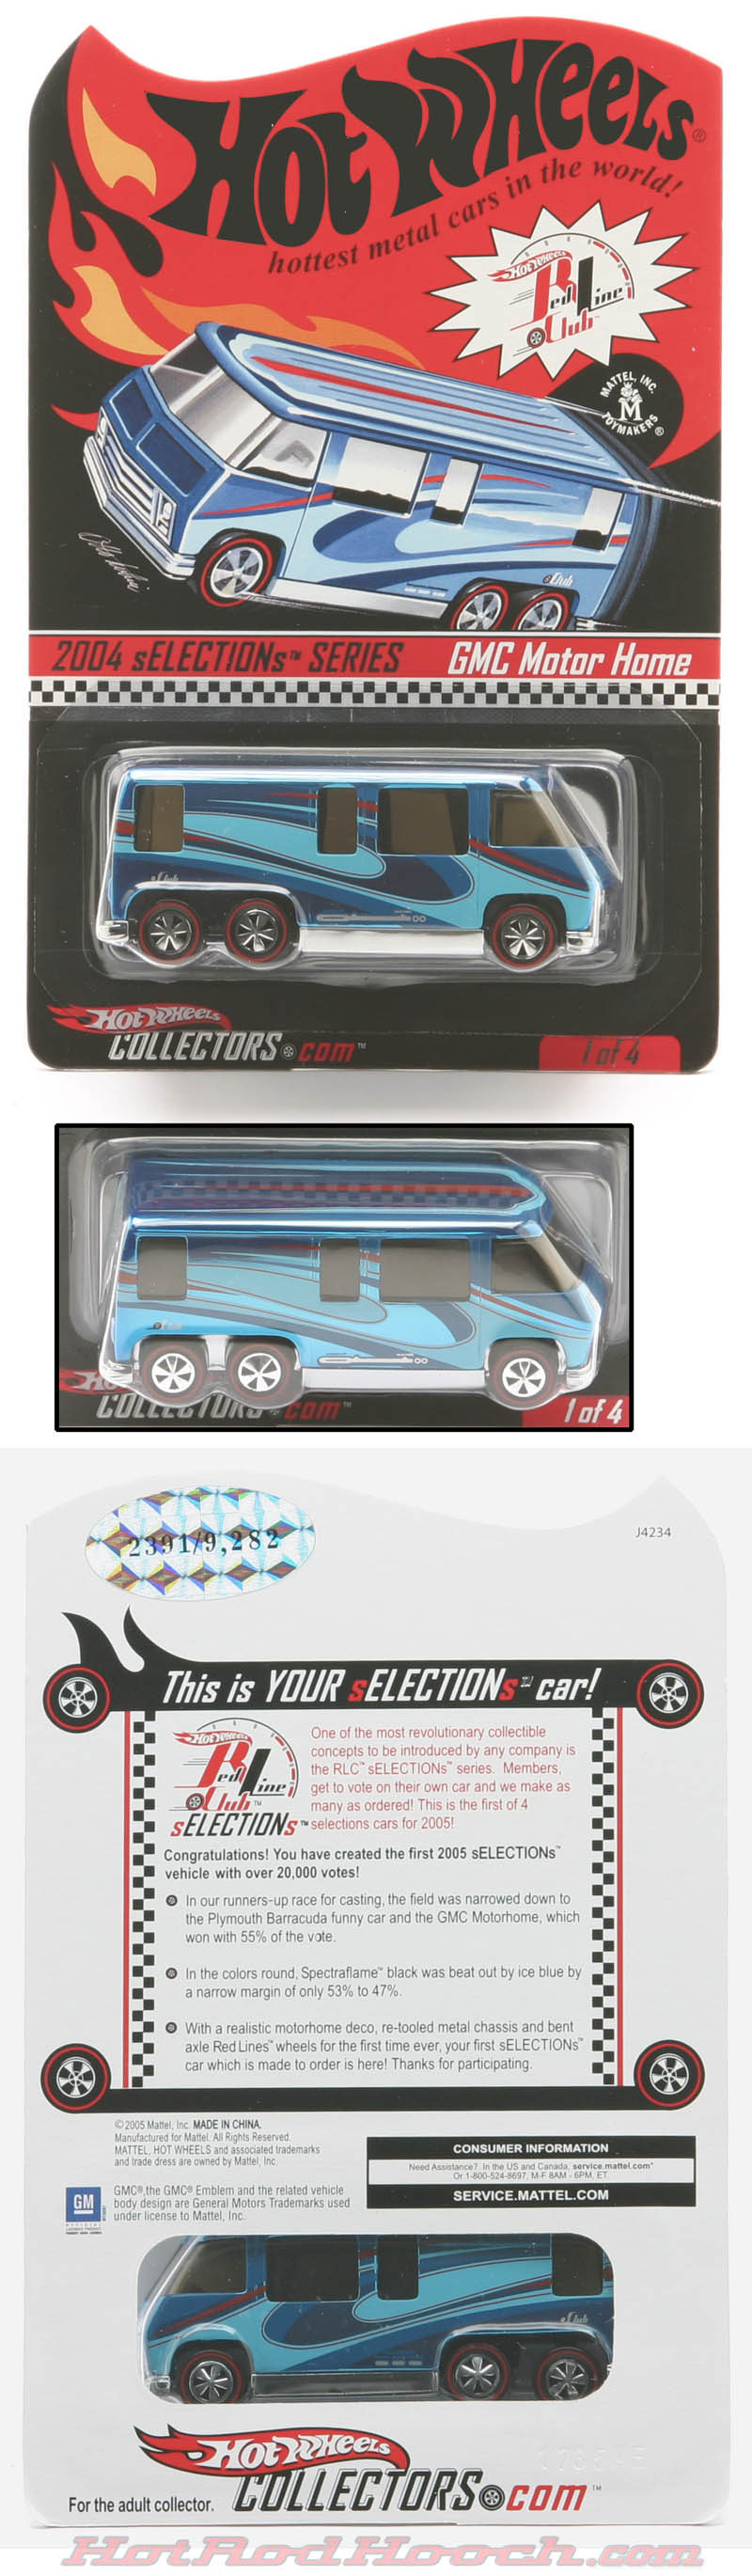 Hot Rod Hooch - Hot Wheels Redline Club cars.